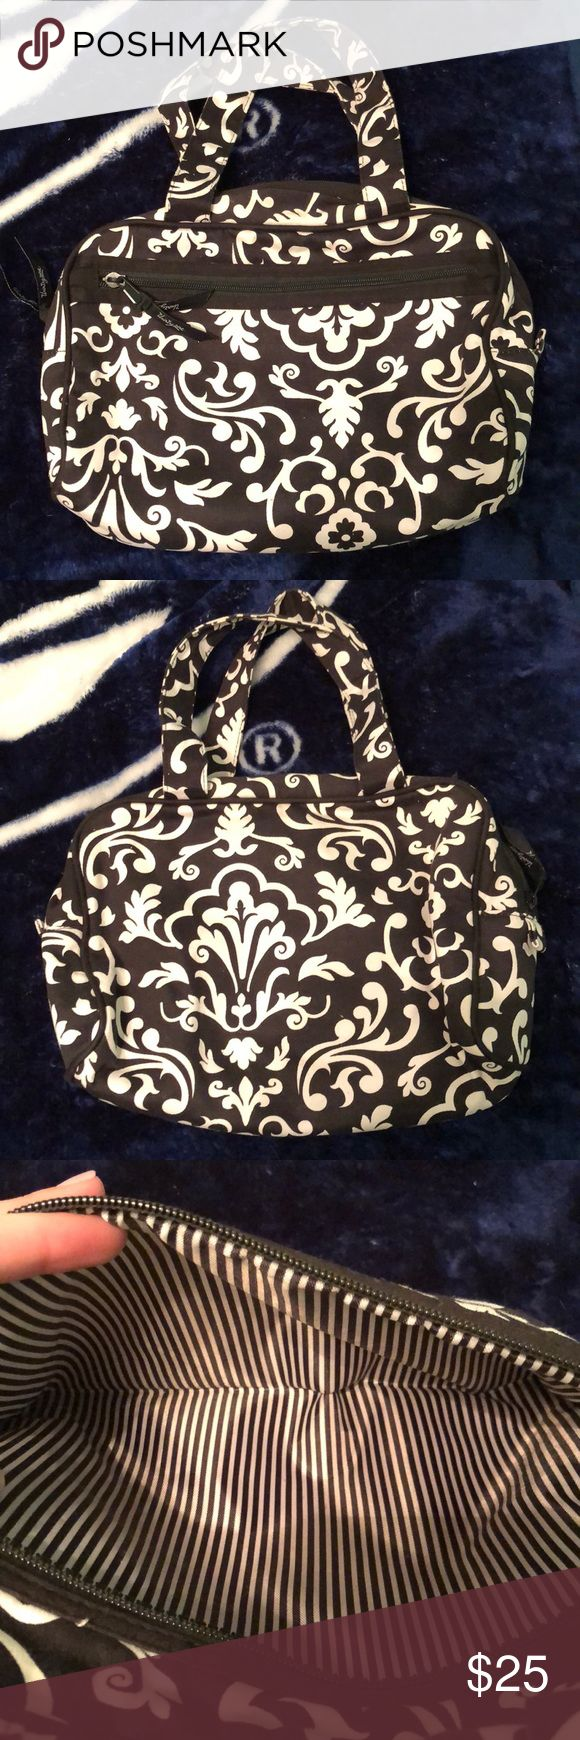 Thirty-one black and white makeup bag Pretty decent condition. Inside just needs a baby wipe taken to it. Pockets are super clean. Great travel bag since inside can be wiped down:) Thirty-One Bags Cosmetic Bags & Cases